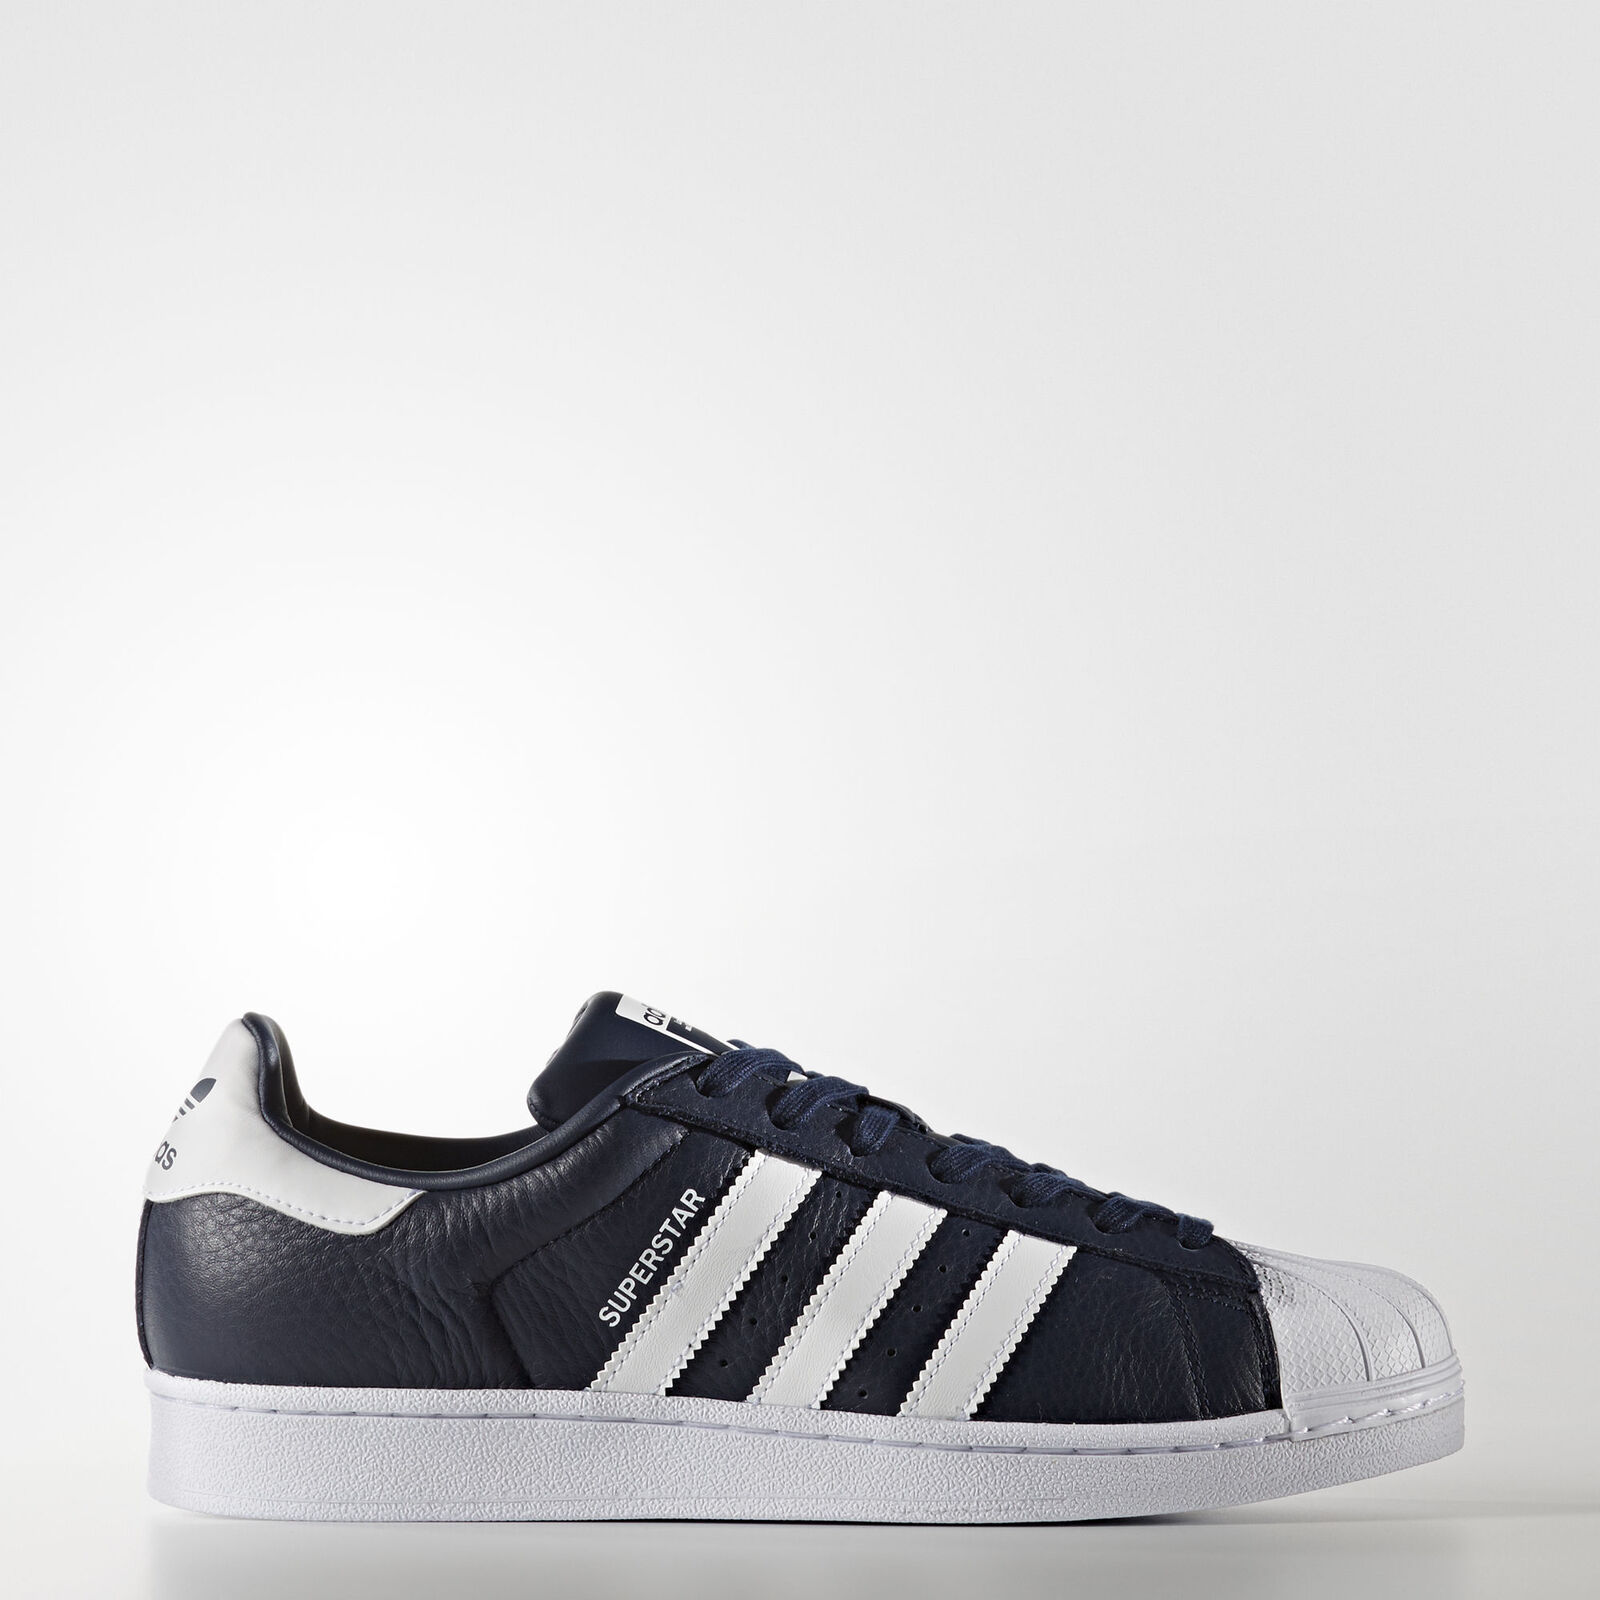 adidas superstar foundation shoes